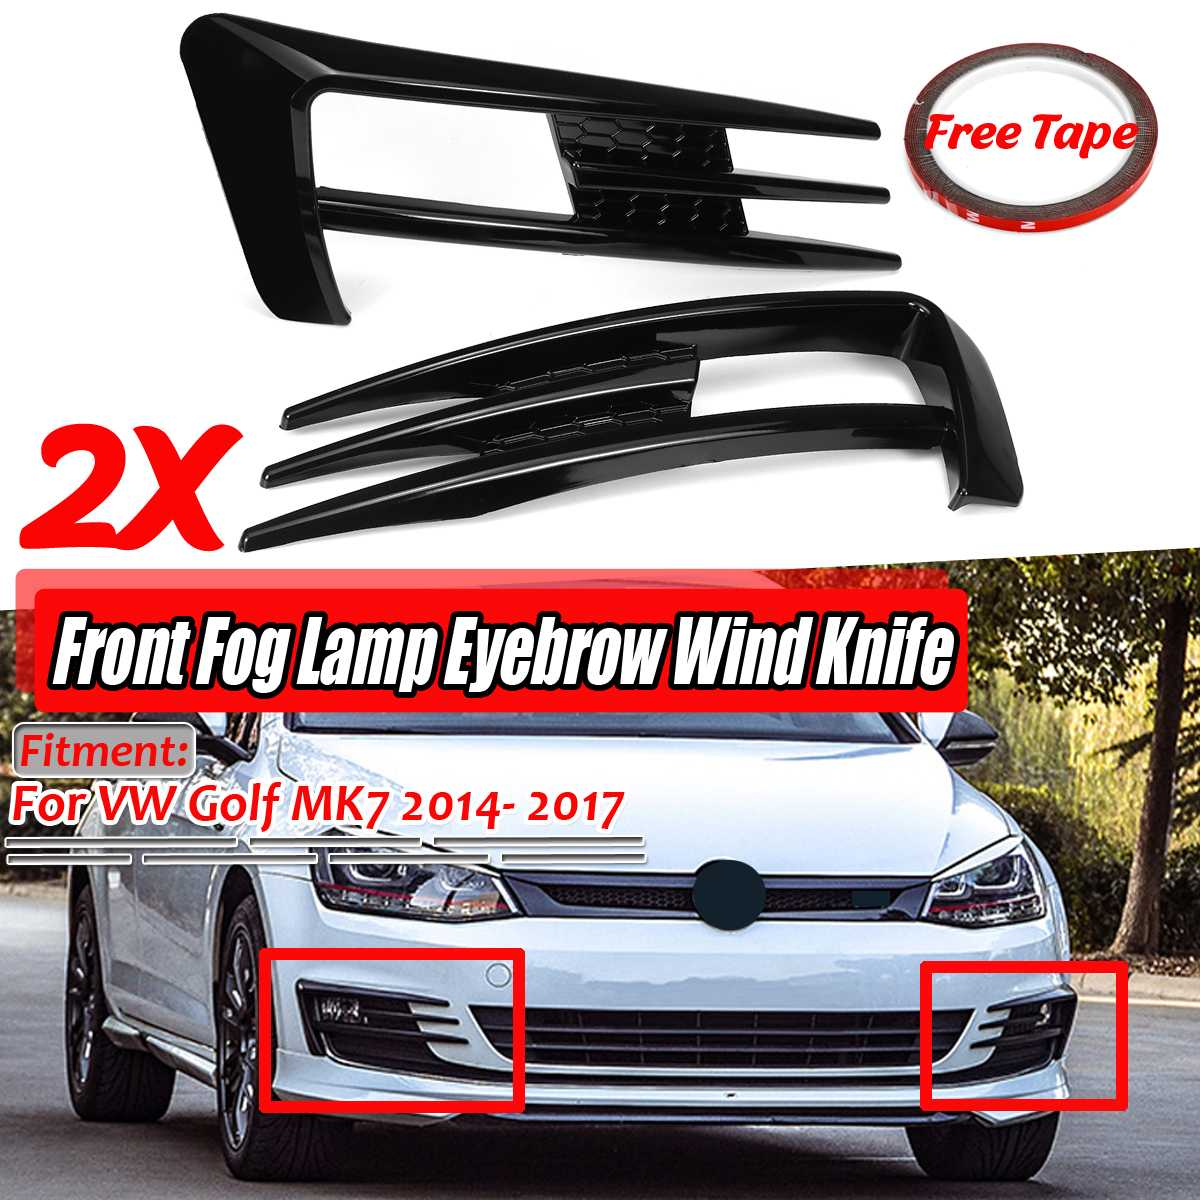 Trim Fog-Lamp Wind-Knife-Cover Car Golf Mk7 VW Front ABS Eyebrow for A-Pair